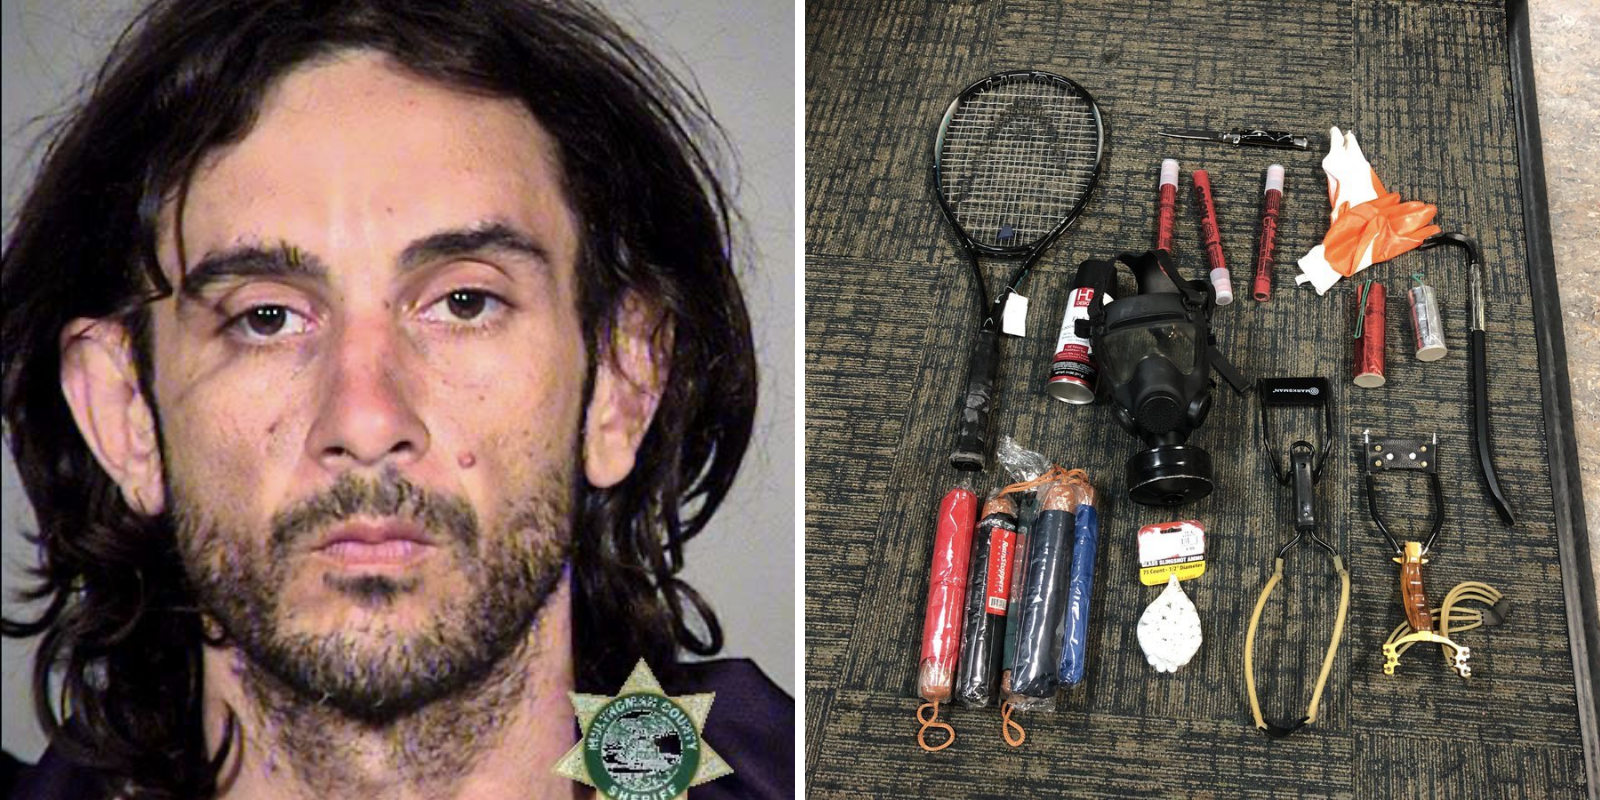 DOJ charges Seattle man for injuring Portland Fire and Rescue medic at Antifa riot